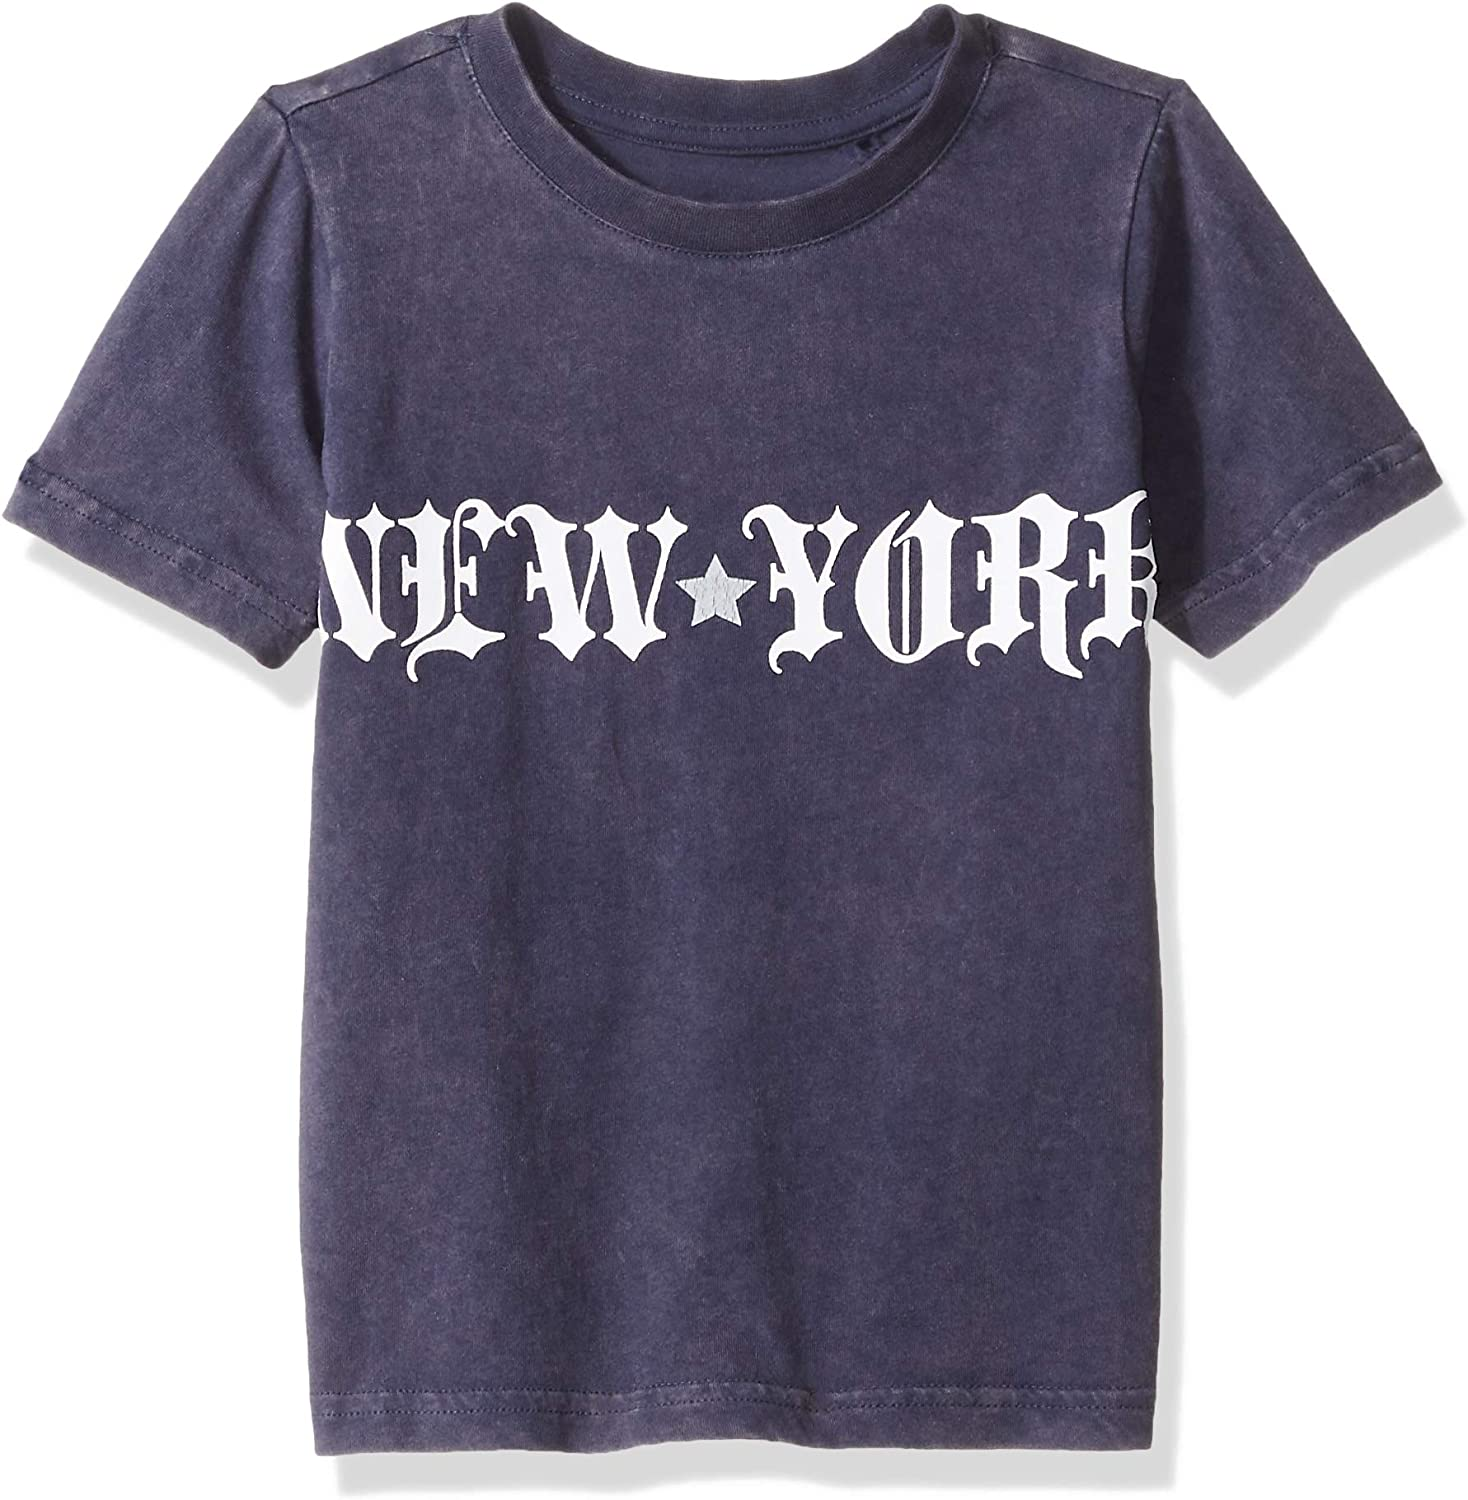 Butter Boys' Mineral Wash T-Shirt